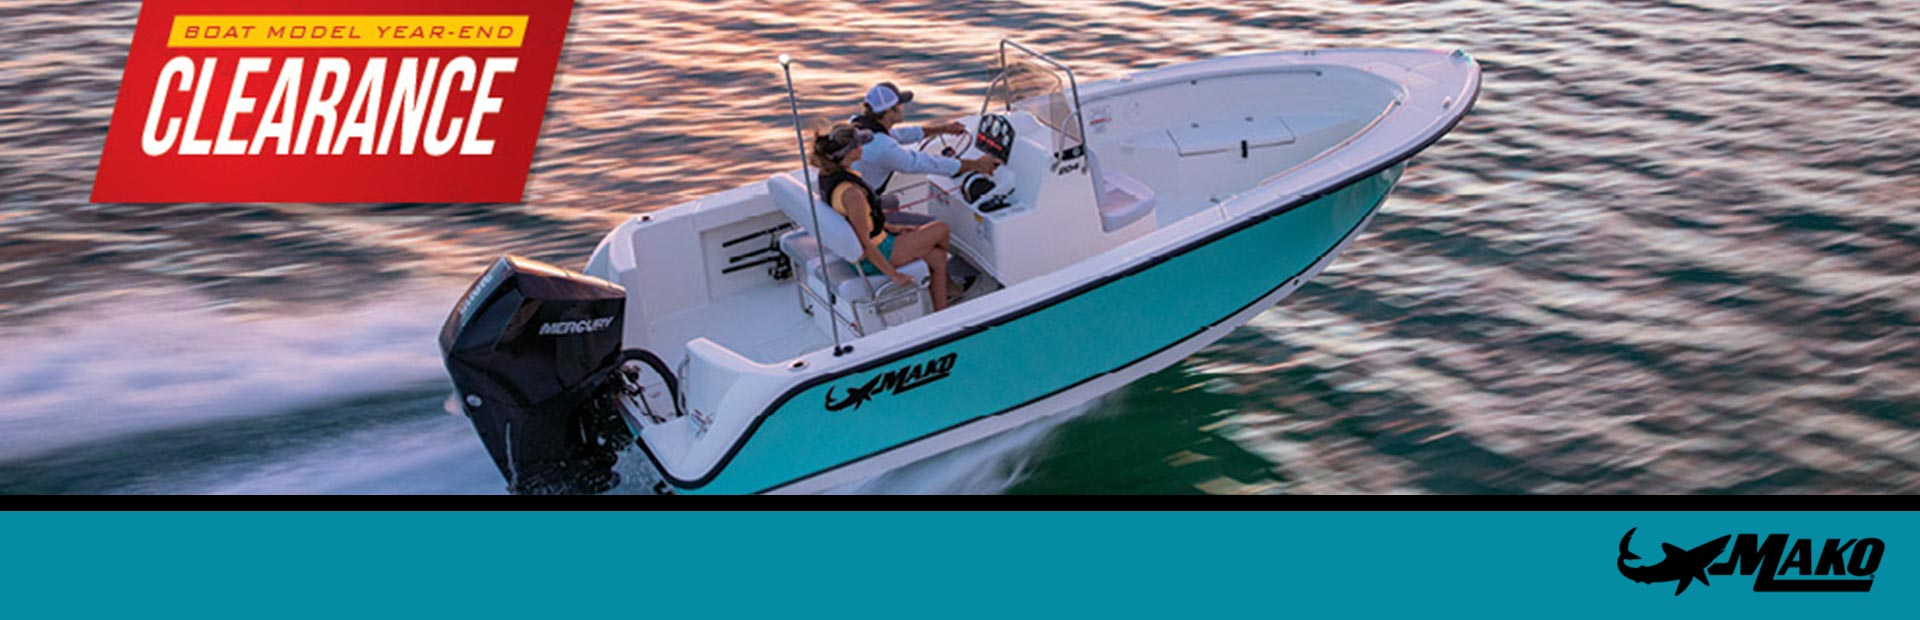 Mako: Boat Model Year-End Clearence